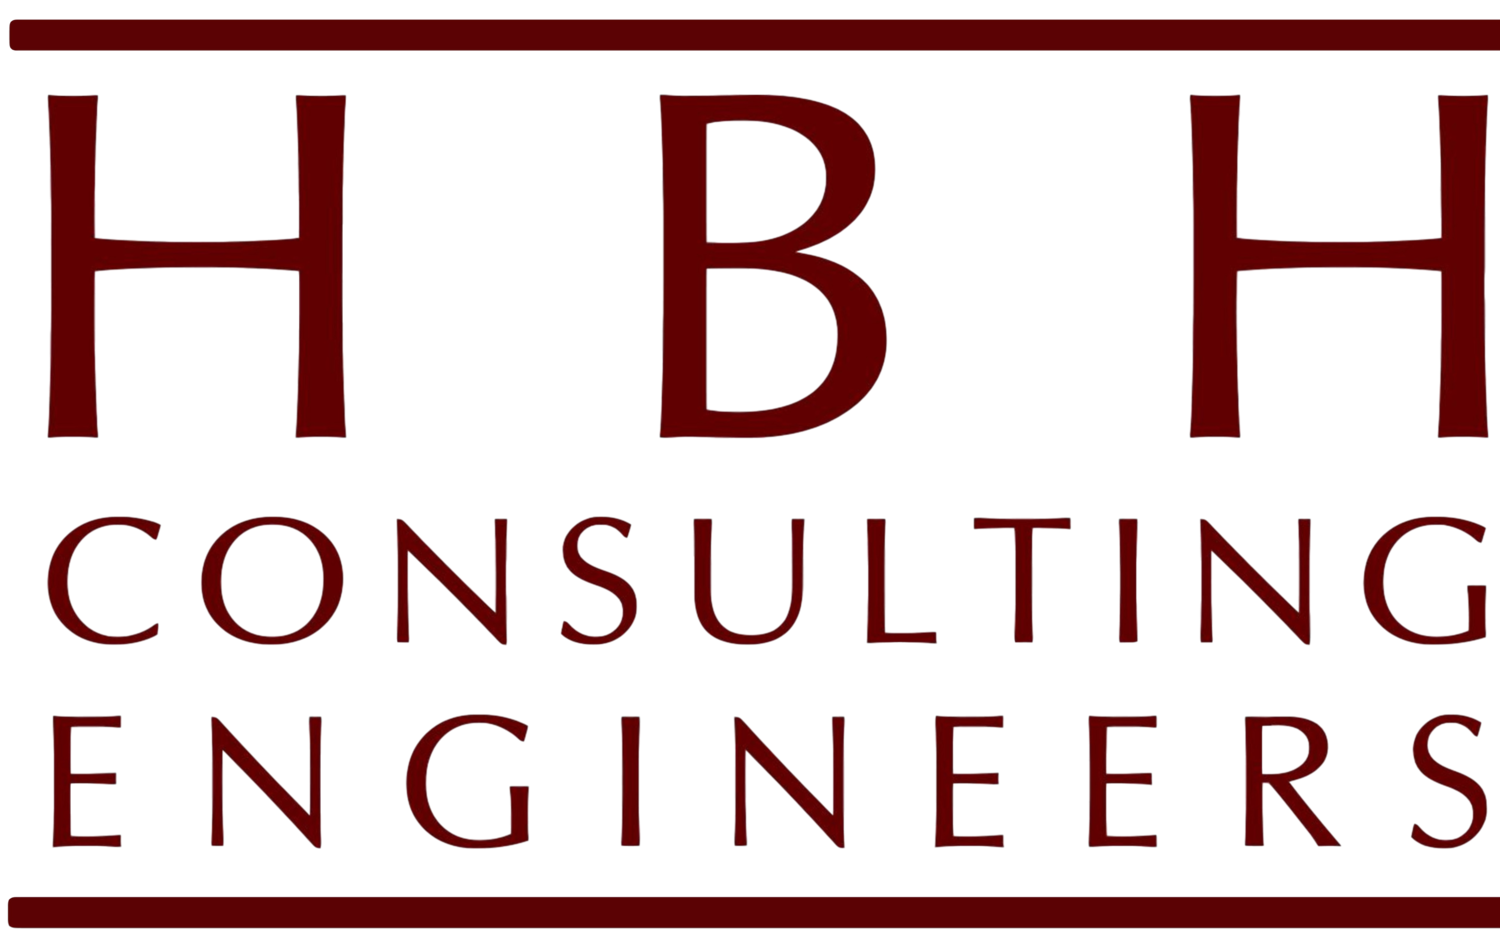 HBH CONSULTING ENGINEERS